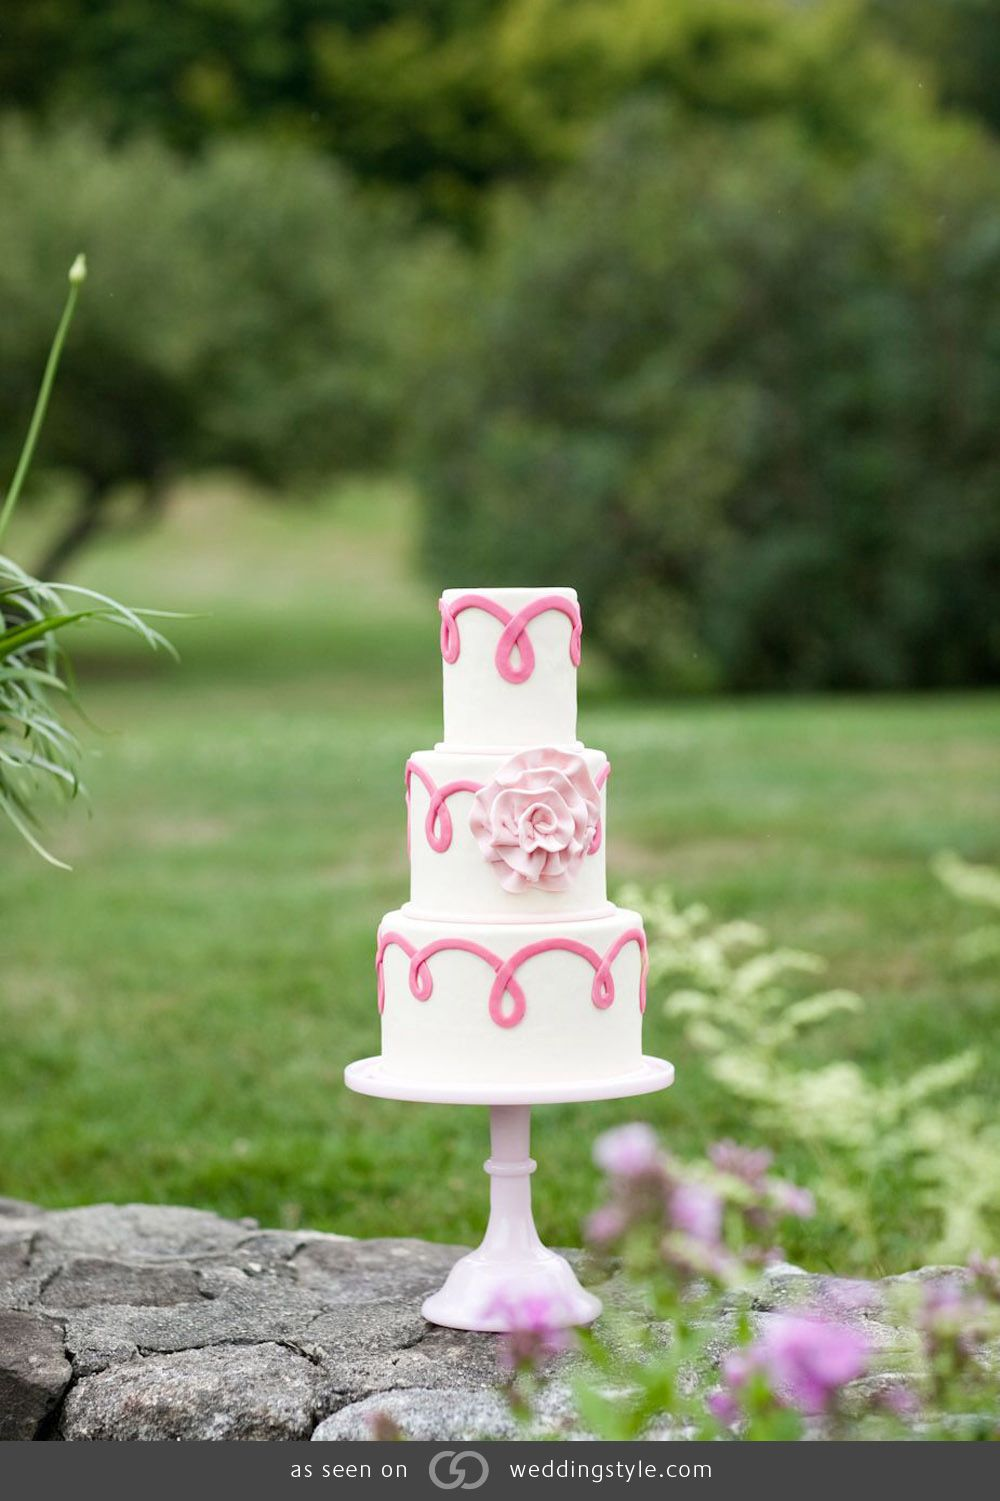 Three-tiered ivory fondant cake with pink fondant ribbon and a light pink ruffled flower.